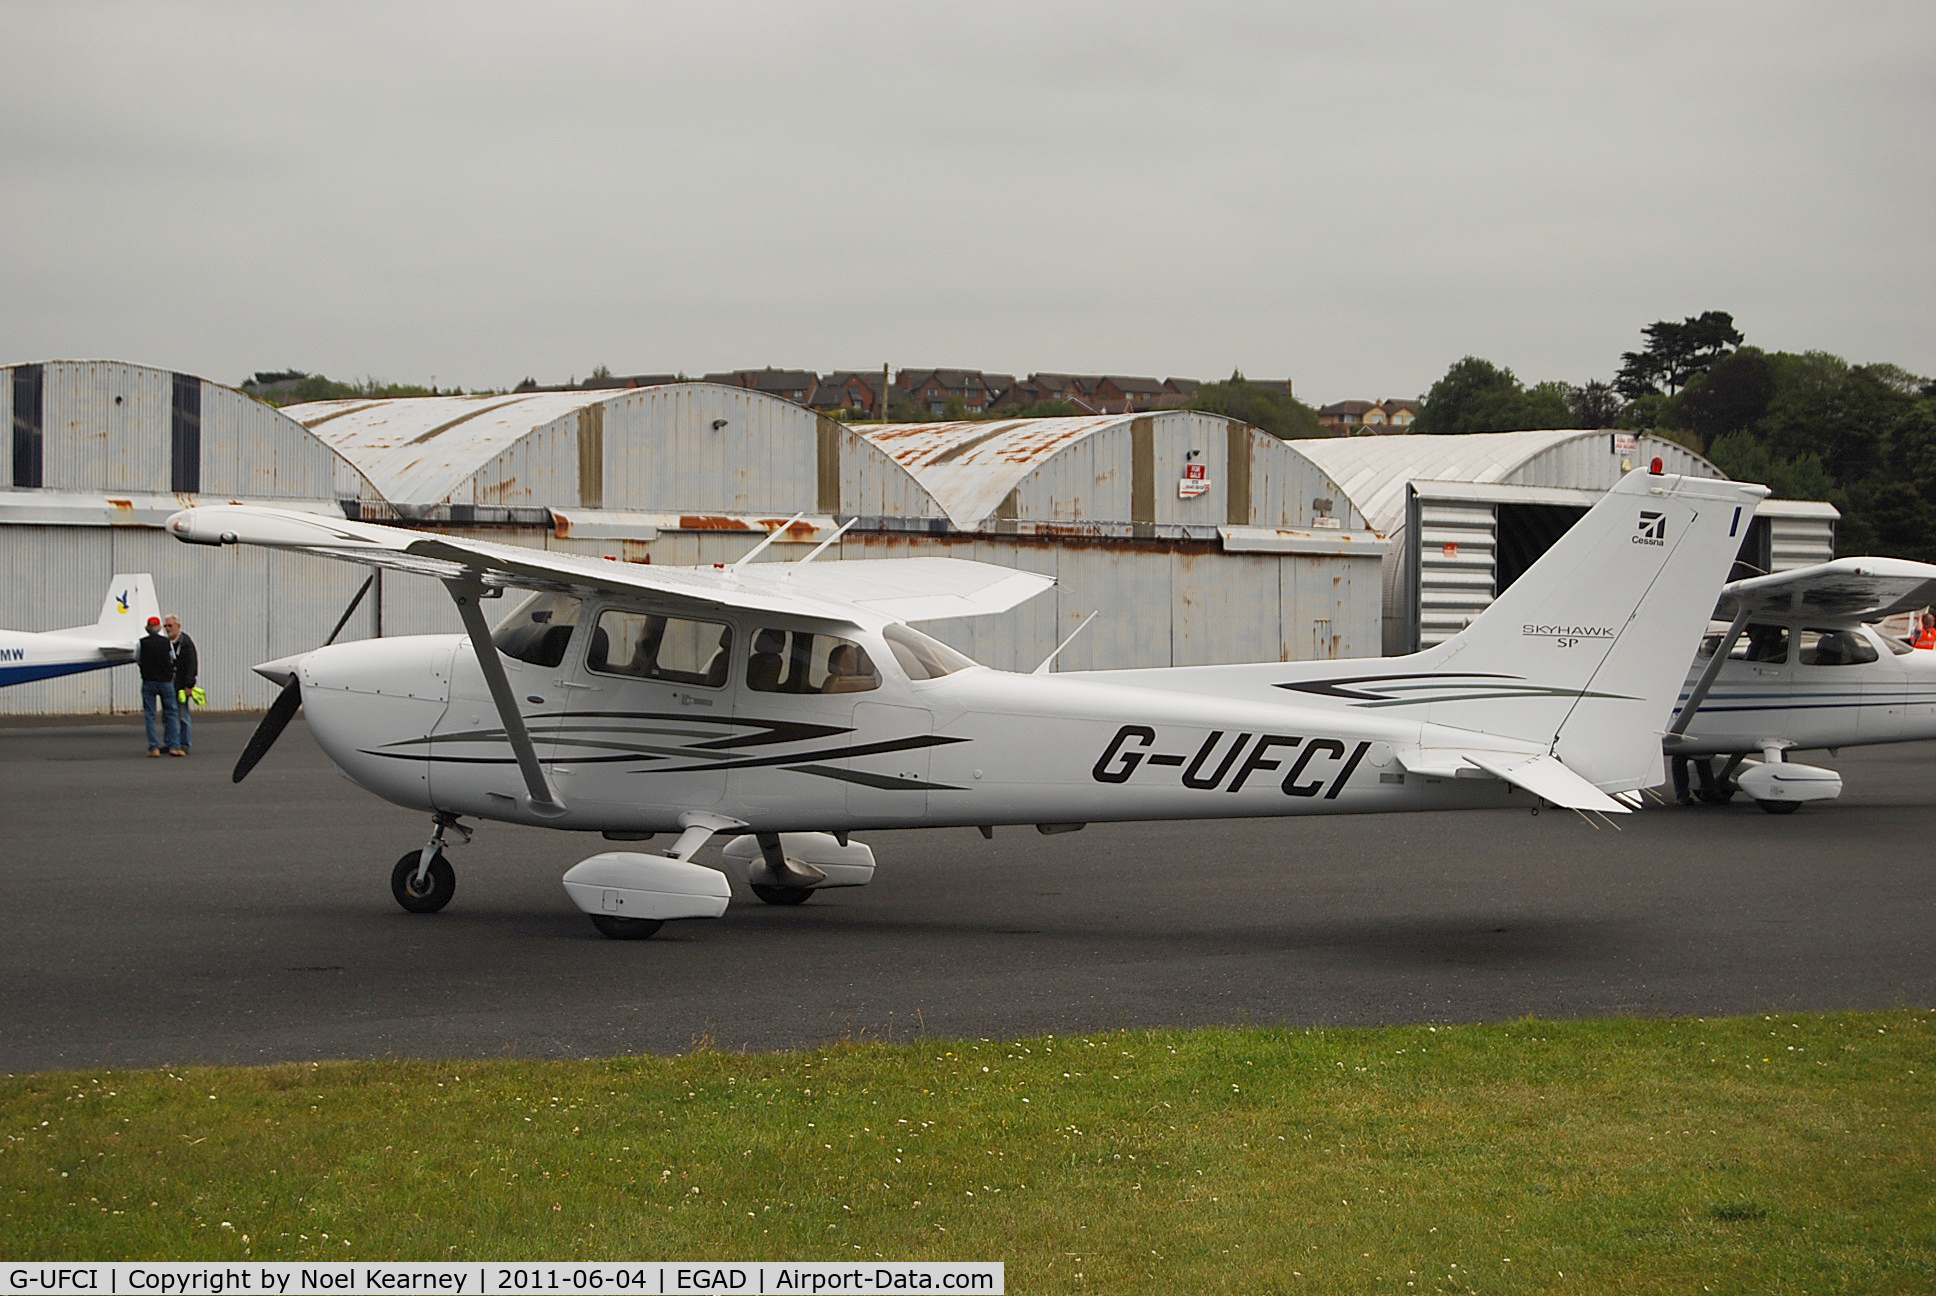 G-UFCI, 2007 Cessna 172S Skyhawk C/N 172S-10508, Parked on the apron at Newtownards Airfield.